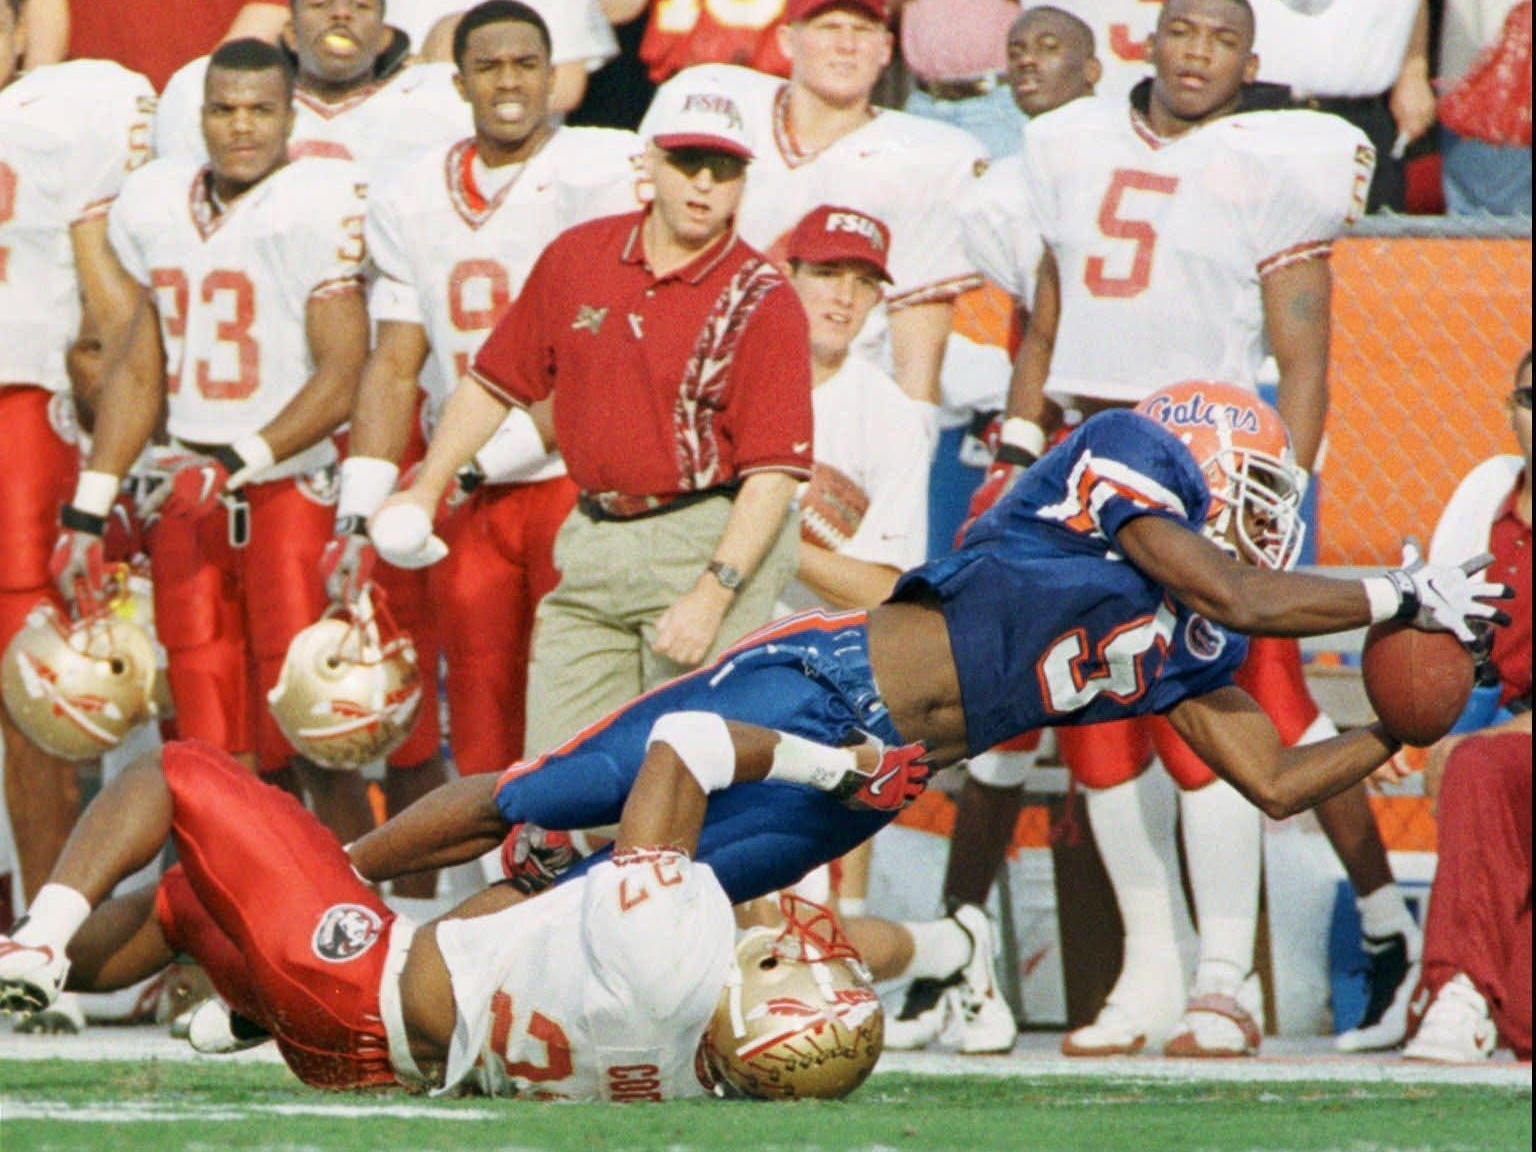 Florida wide receiver Jacquez Green (5) makes an acrobatic catch in front of Florida State's Tay Cody (27) and the Florida State bench during the Gator's 32-29 win on Nov. 22, 1997 in Gainesville.